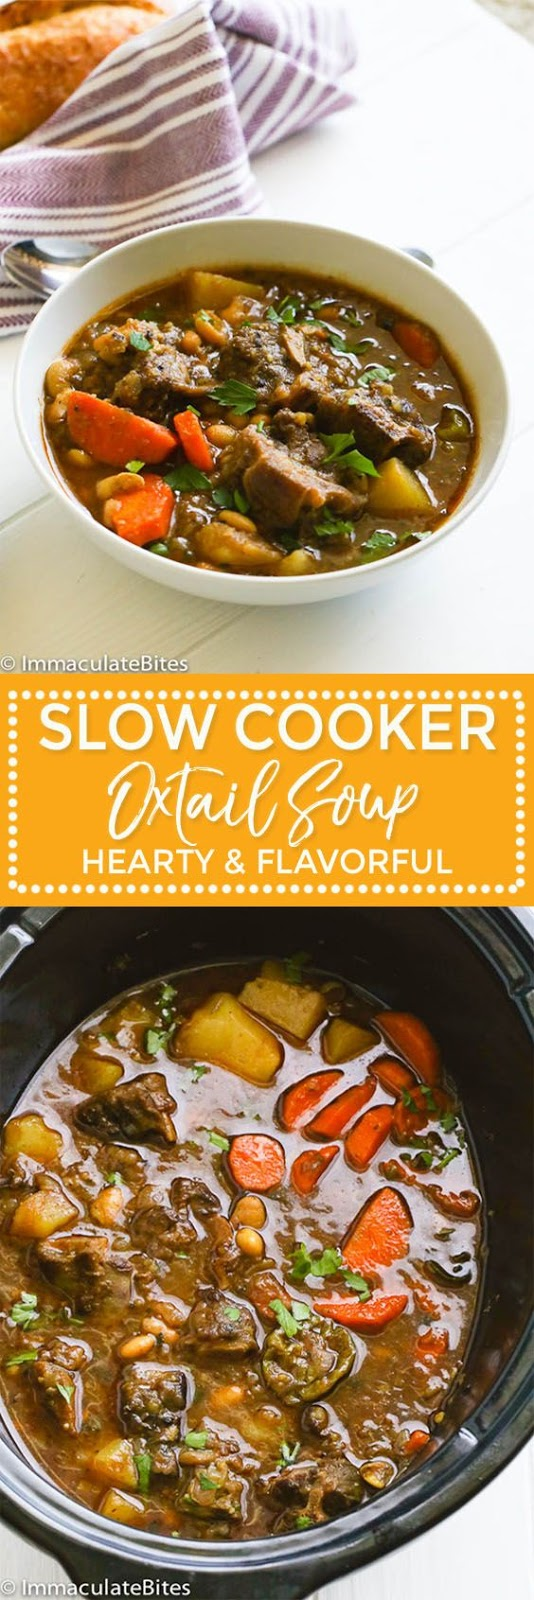 Slow Cooker Oxtail Soup Recipes